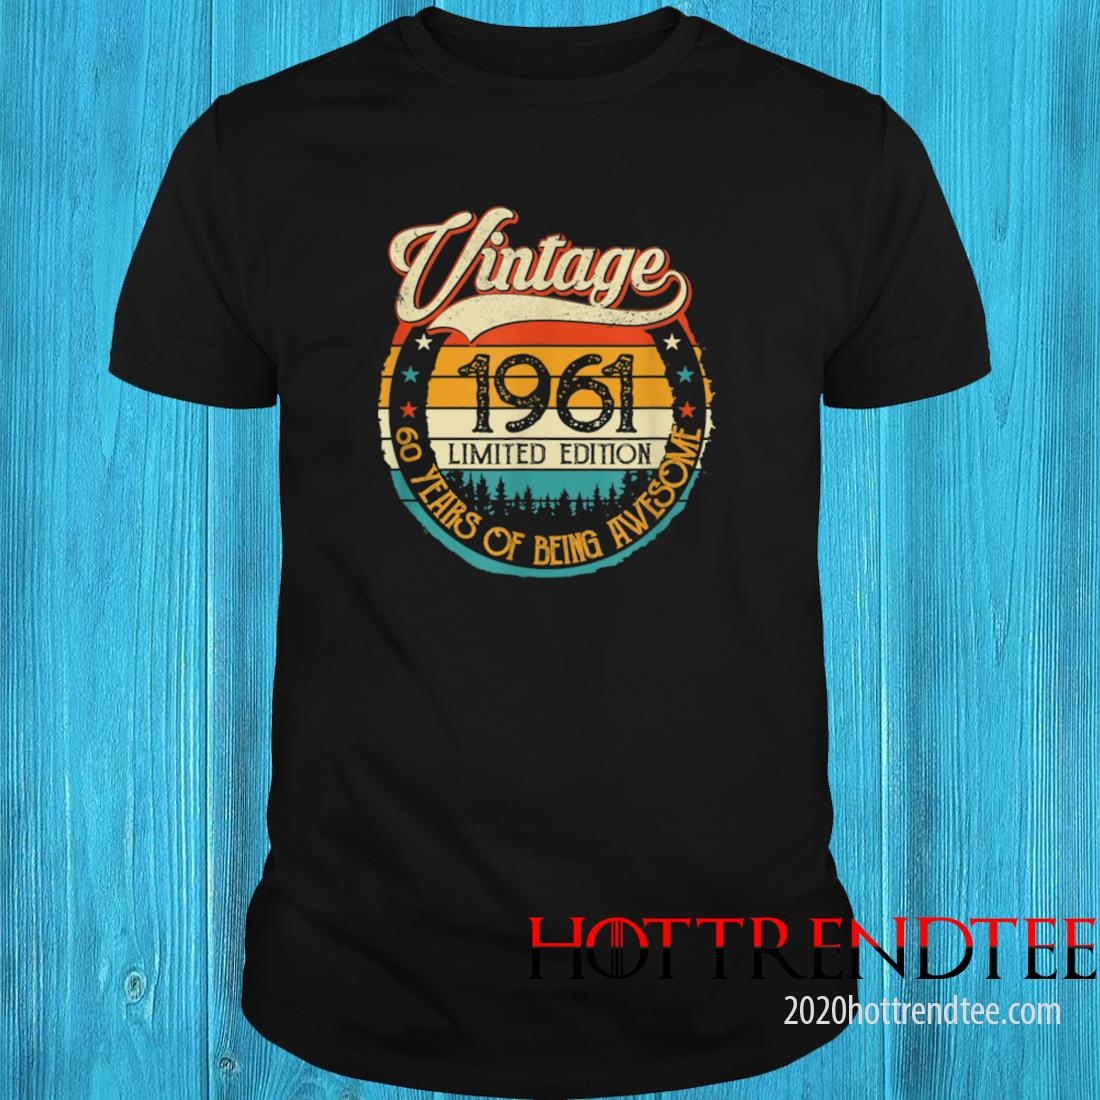 Vintage 1961 60th Birthday 60 Years Old Bday Birthday Queen Shirt